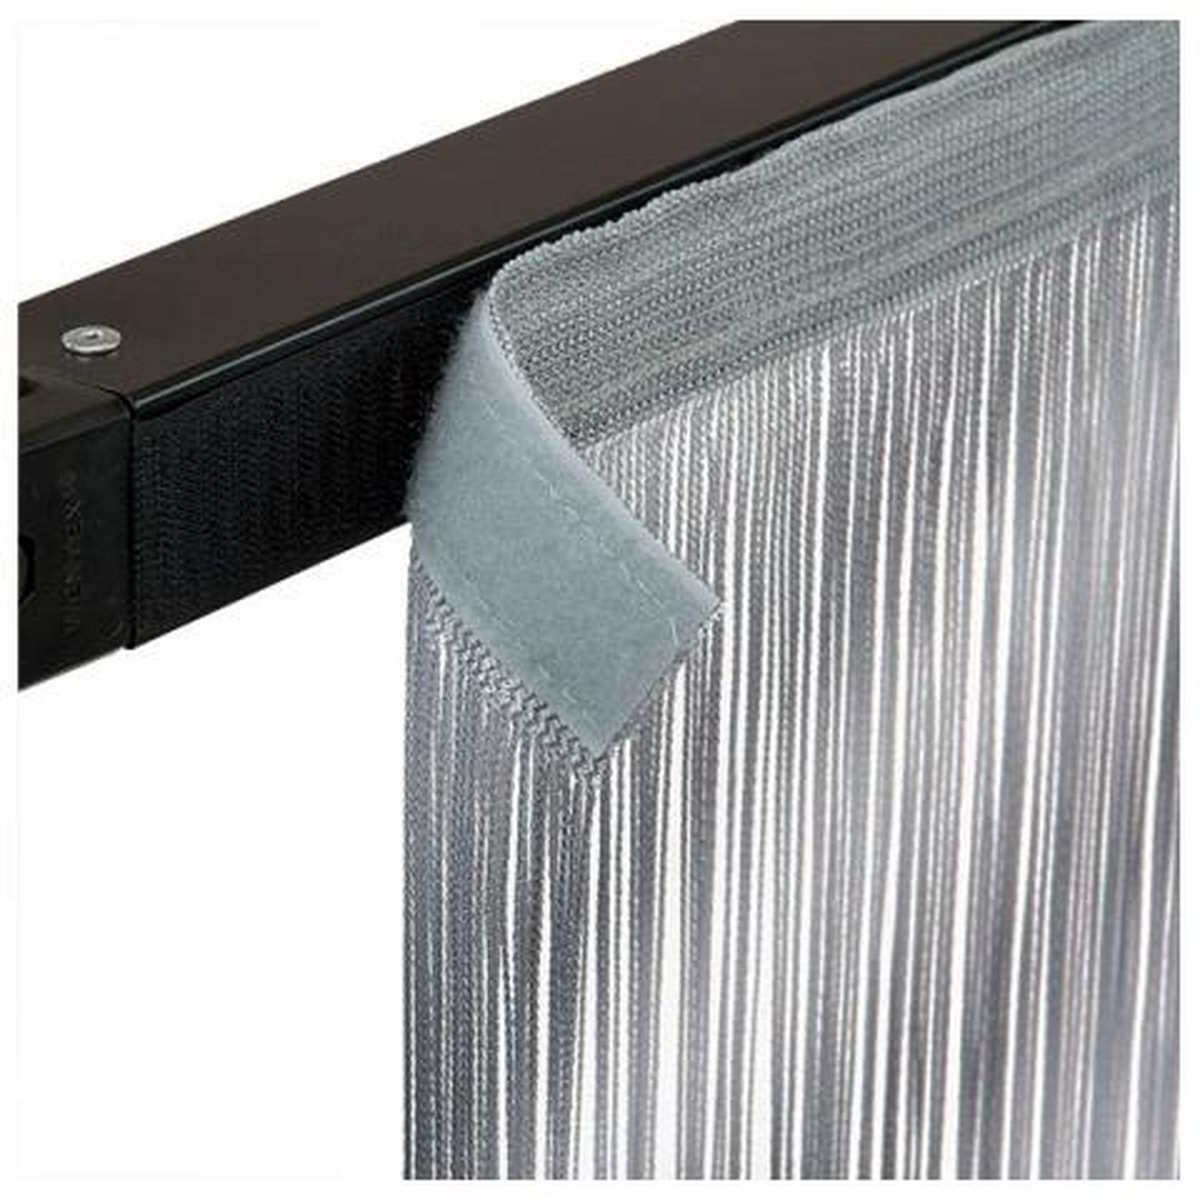 showtec string curtain 3x3m silber grau inkl klettverschluss g nstig kaufen. Black Bedroom Furniture Sets. Home Design Ideas